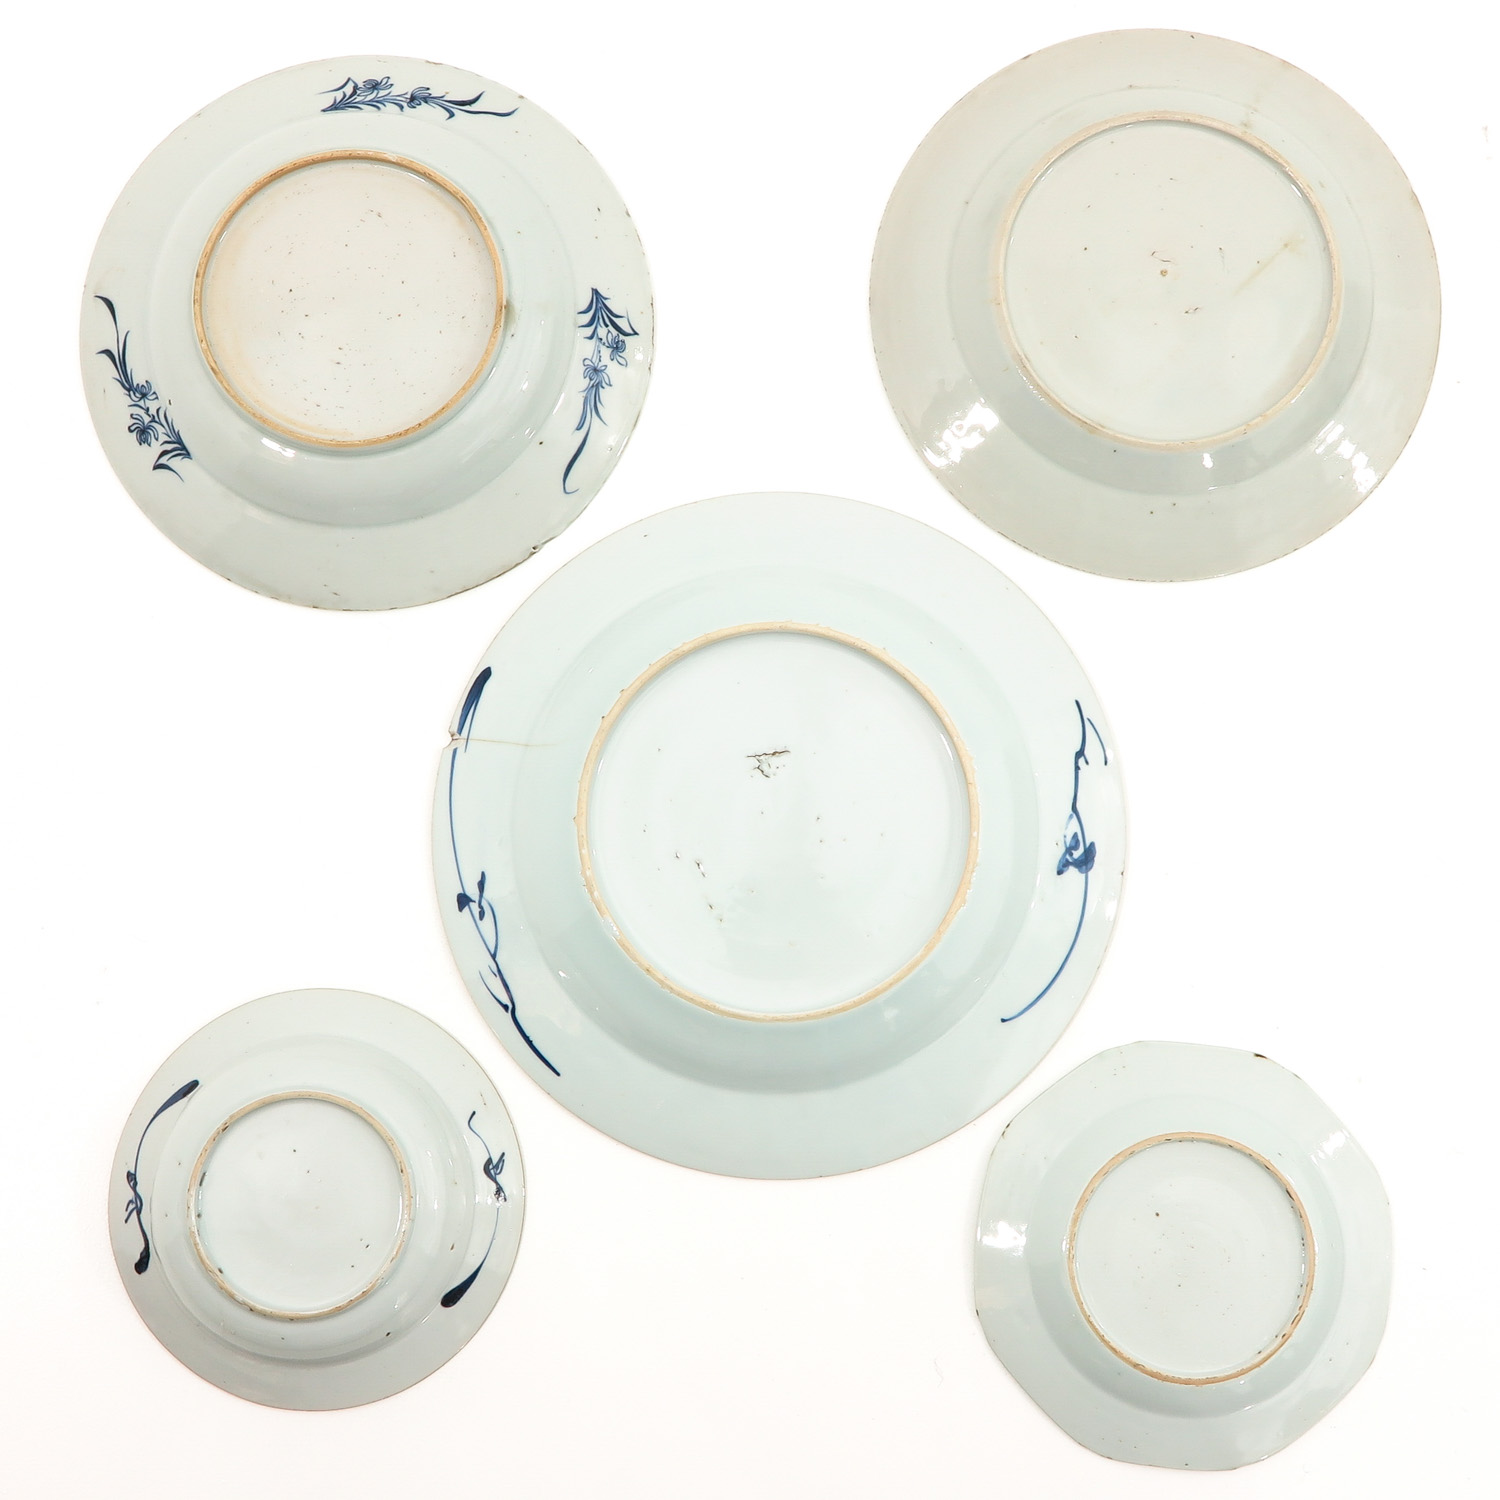 A Lot of 5 Blue and White Plates - Image 2 of 10